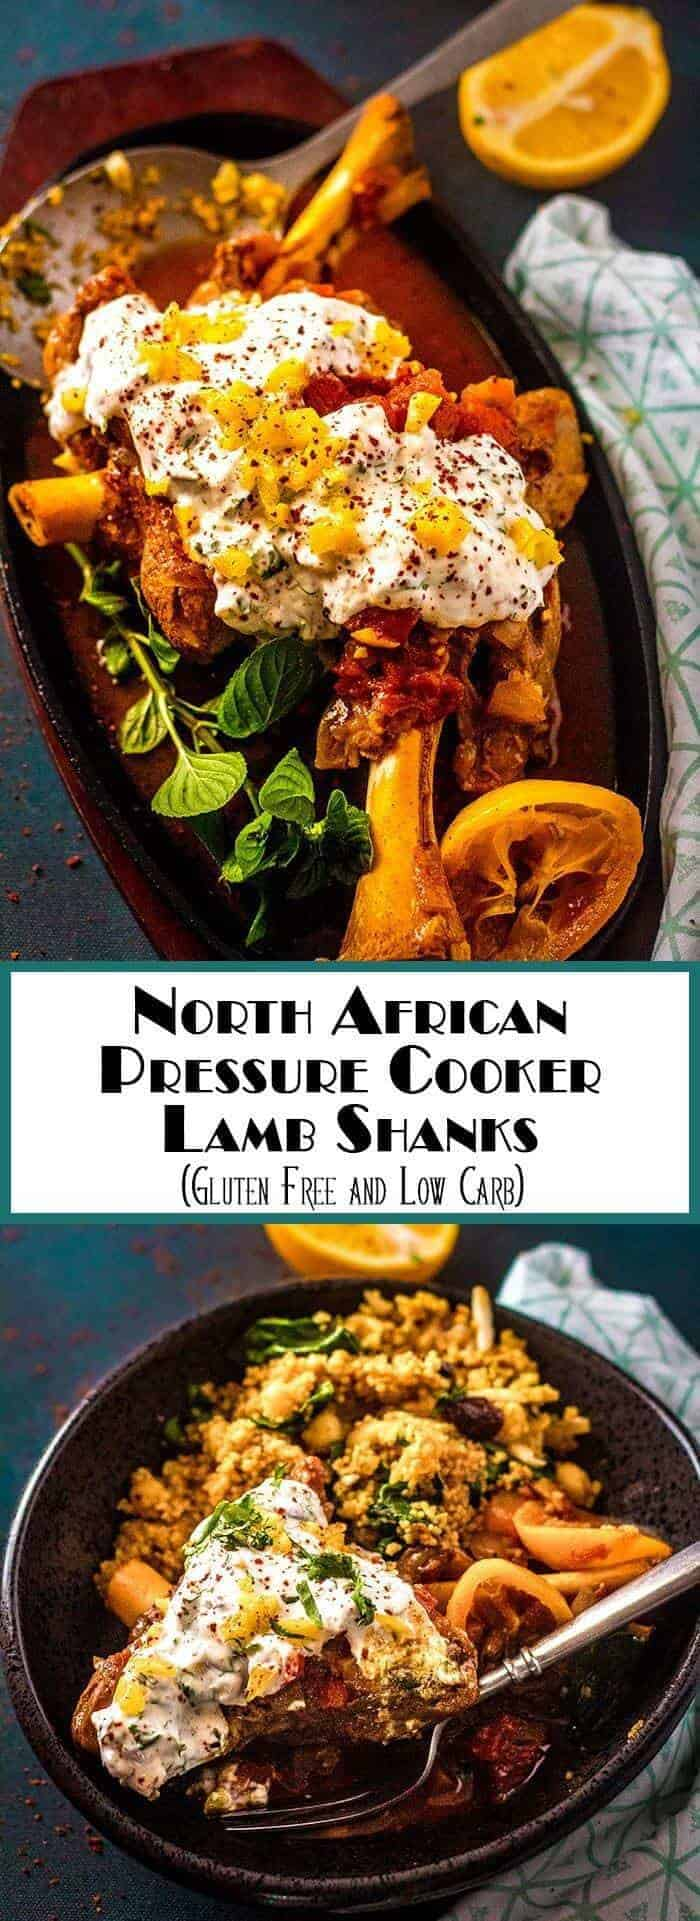 Bold North African flavors sing in this substantial lamb dish... North African Pressure Cooker Lamb Shanks has slow-cooked tenderness and flavor with the aid of your pressure cooker! Serve with simple or adorned couscous, freekeh, or brown rice... Instant Pot | Lamb Recipes | Moroccan | Pressure Cooker | North african | Gluten Free | Low Carb